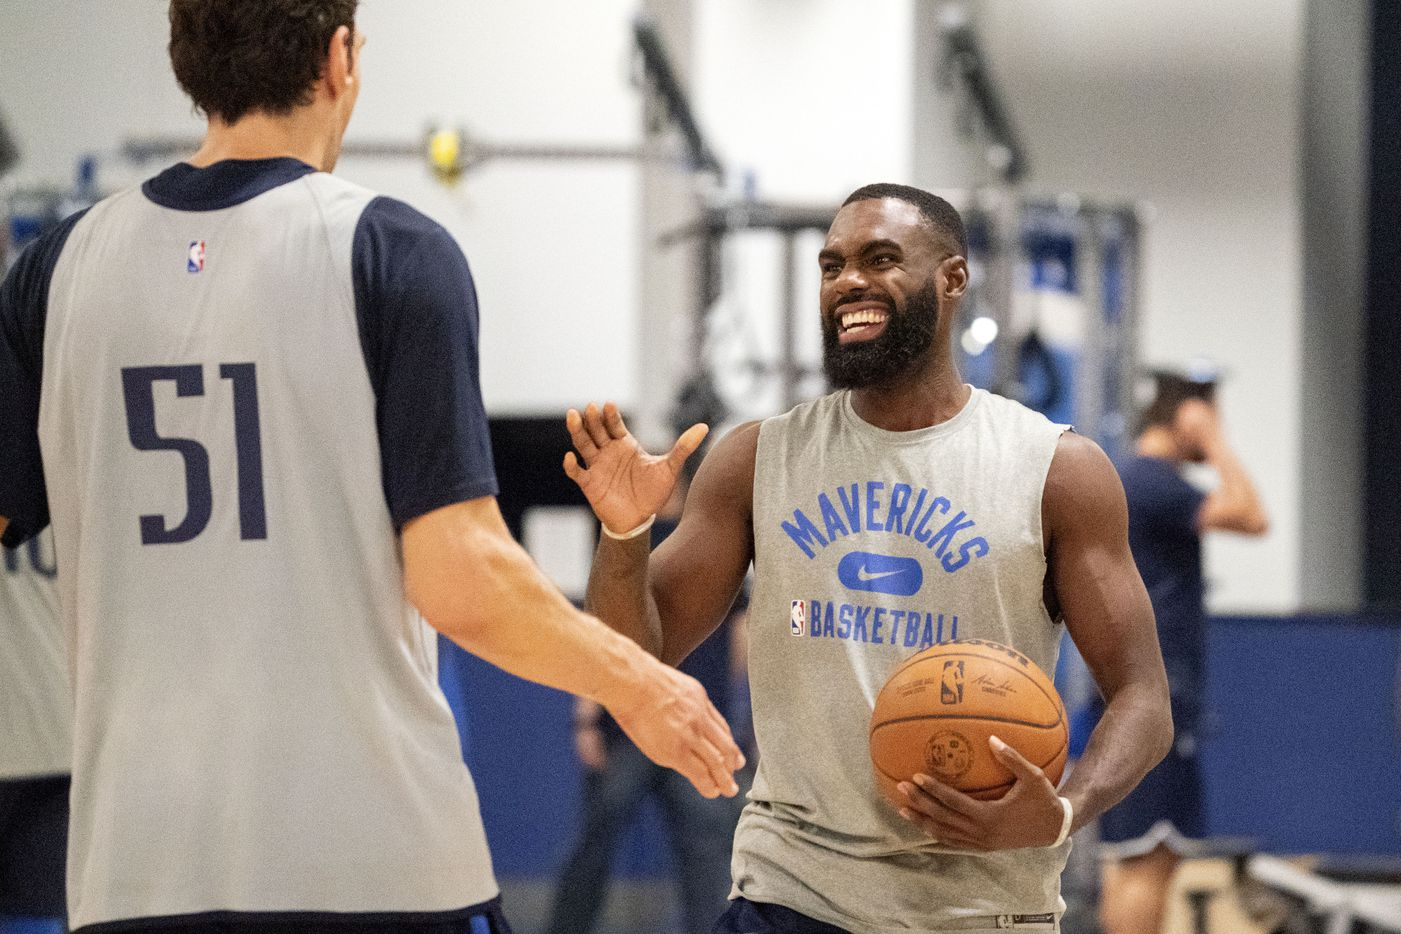 Dallas Mavericks guard Tim Hardaway Jr. laughs with center Boban Marjanović during a training camp practice Wednesday, September 29, 2021 at the Dallas Mavericks Training Center in Dallas. (Jeffrey McWhorter/Special Contributor)